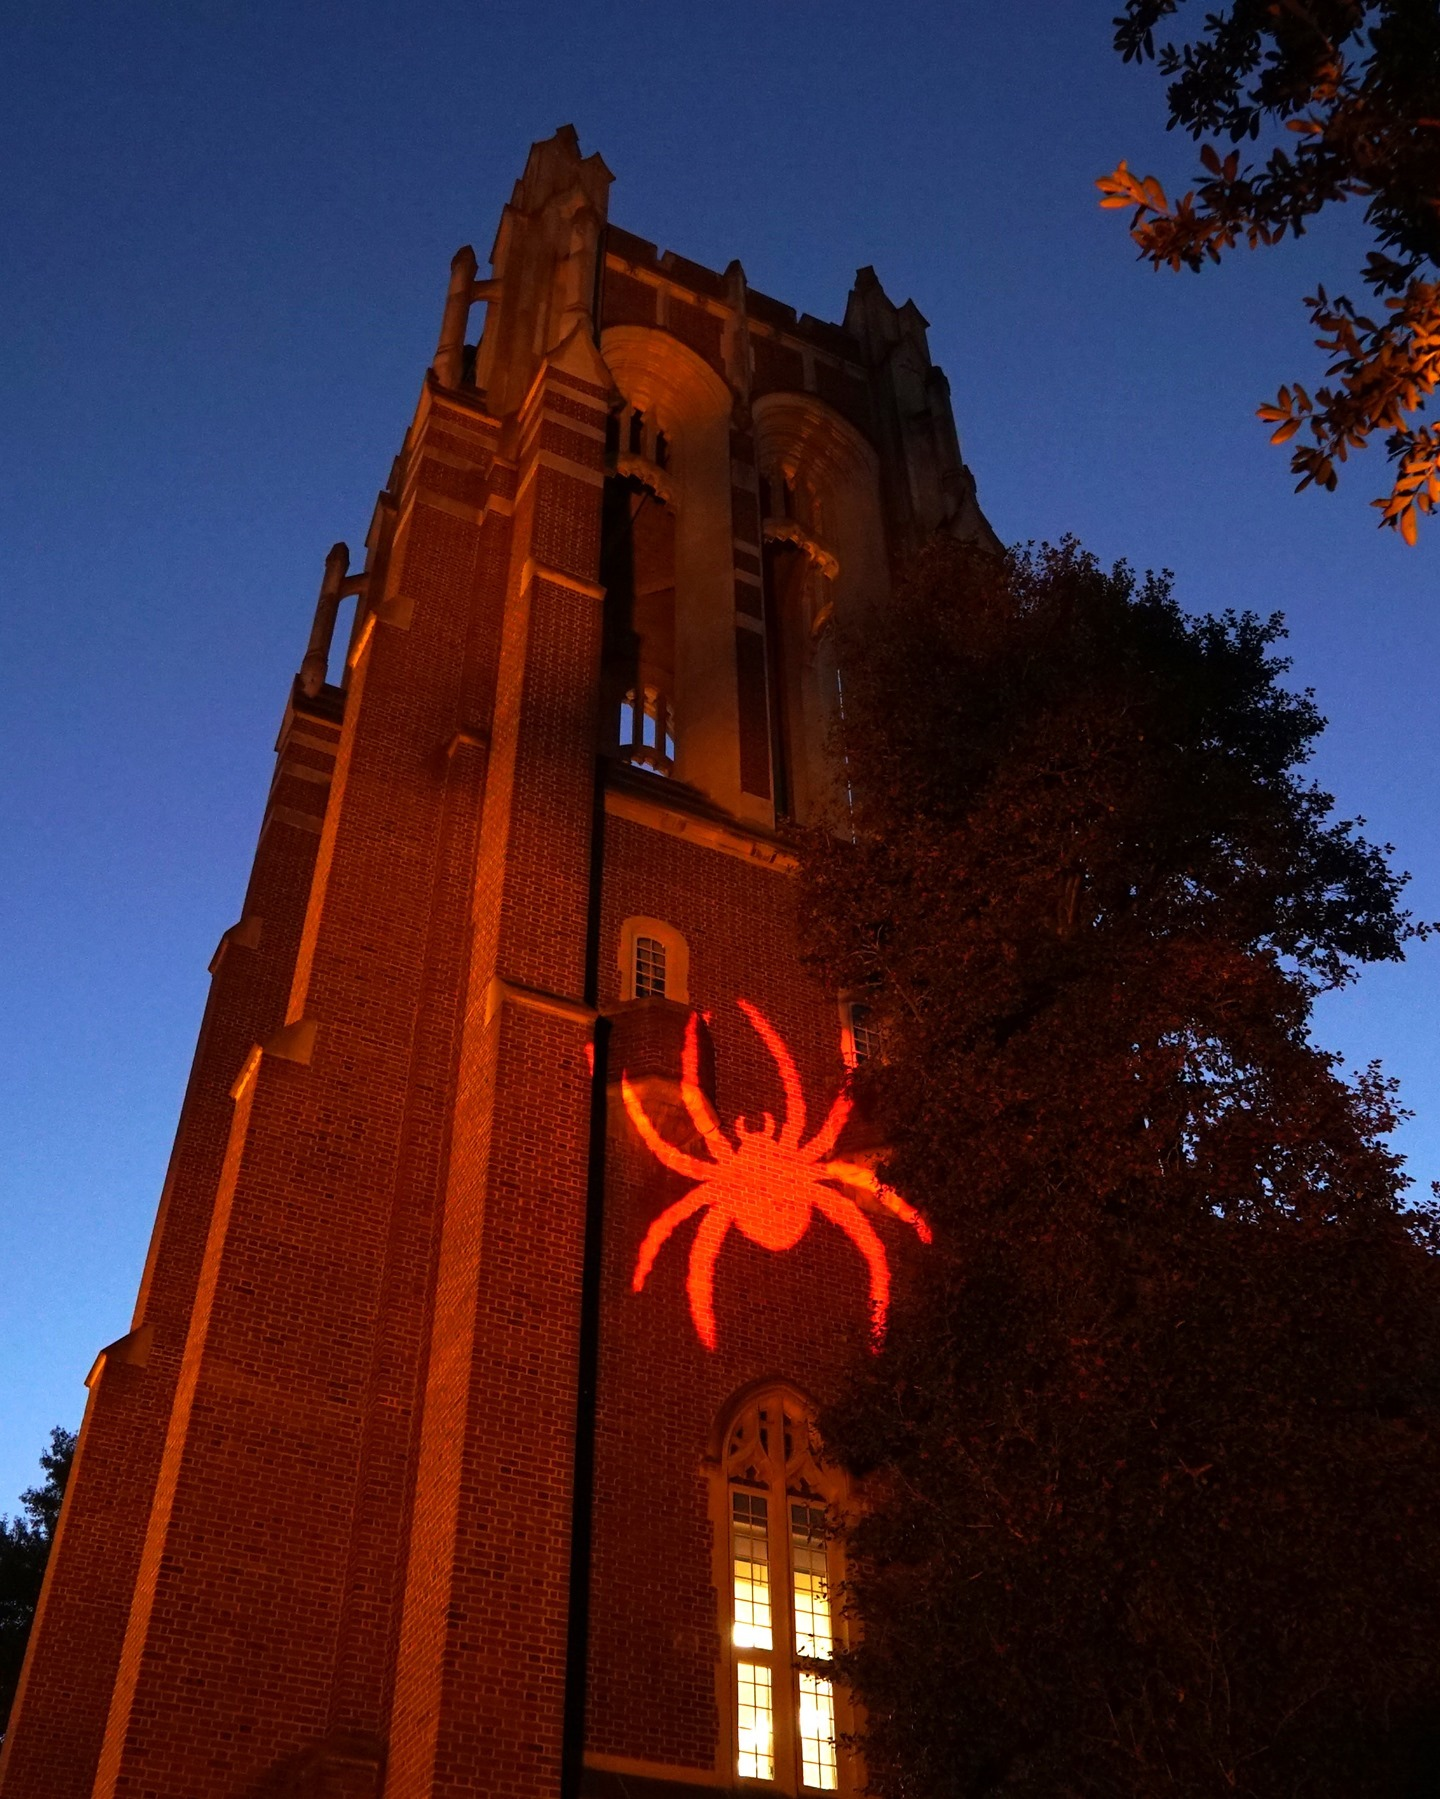 As the sun sets on the last day of classes this semester, we are thankful for our entire #SpiderFamily's hard work — not just in the classroom, but in keeping each other safe. Whether in person or remote, we made the most of this year despite the many challenges. Thank you, #Spiders! 🕷️❤️💙